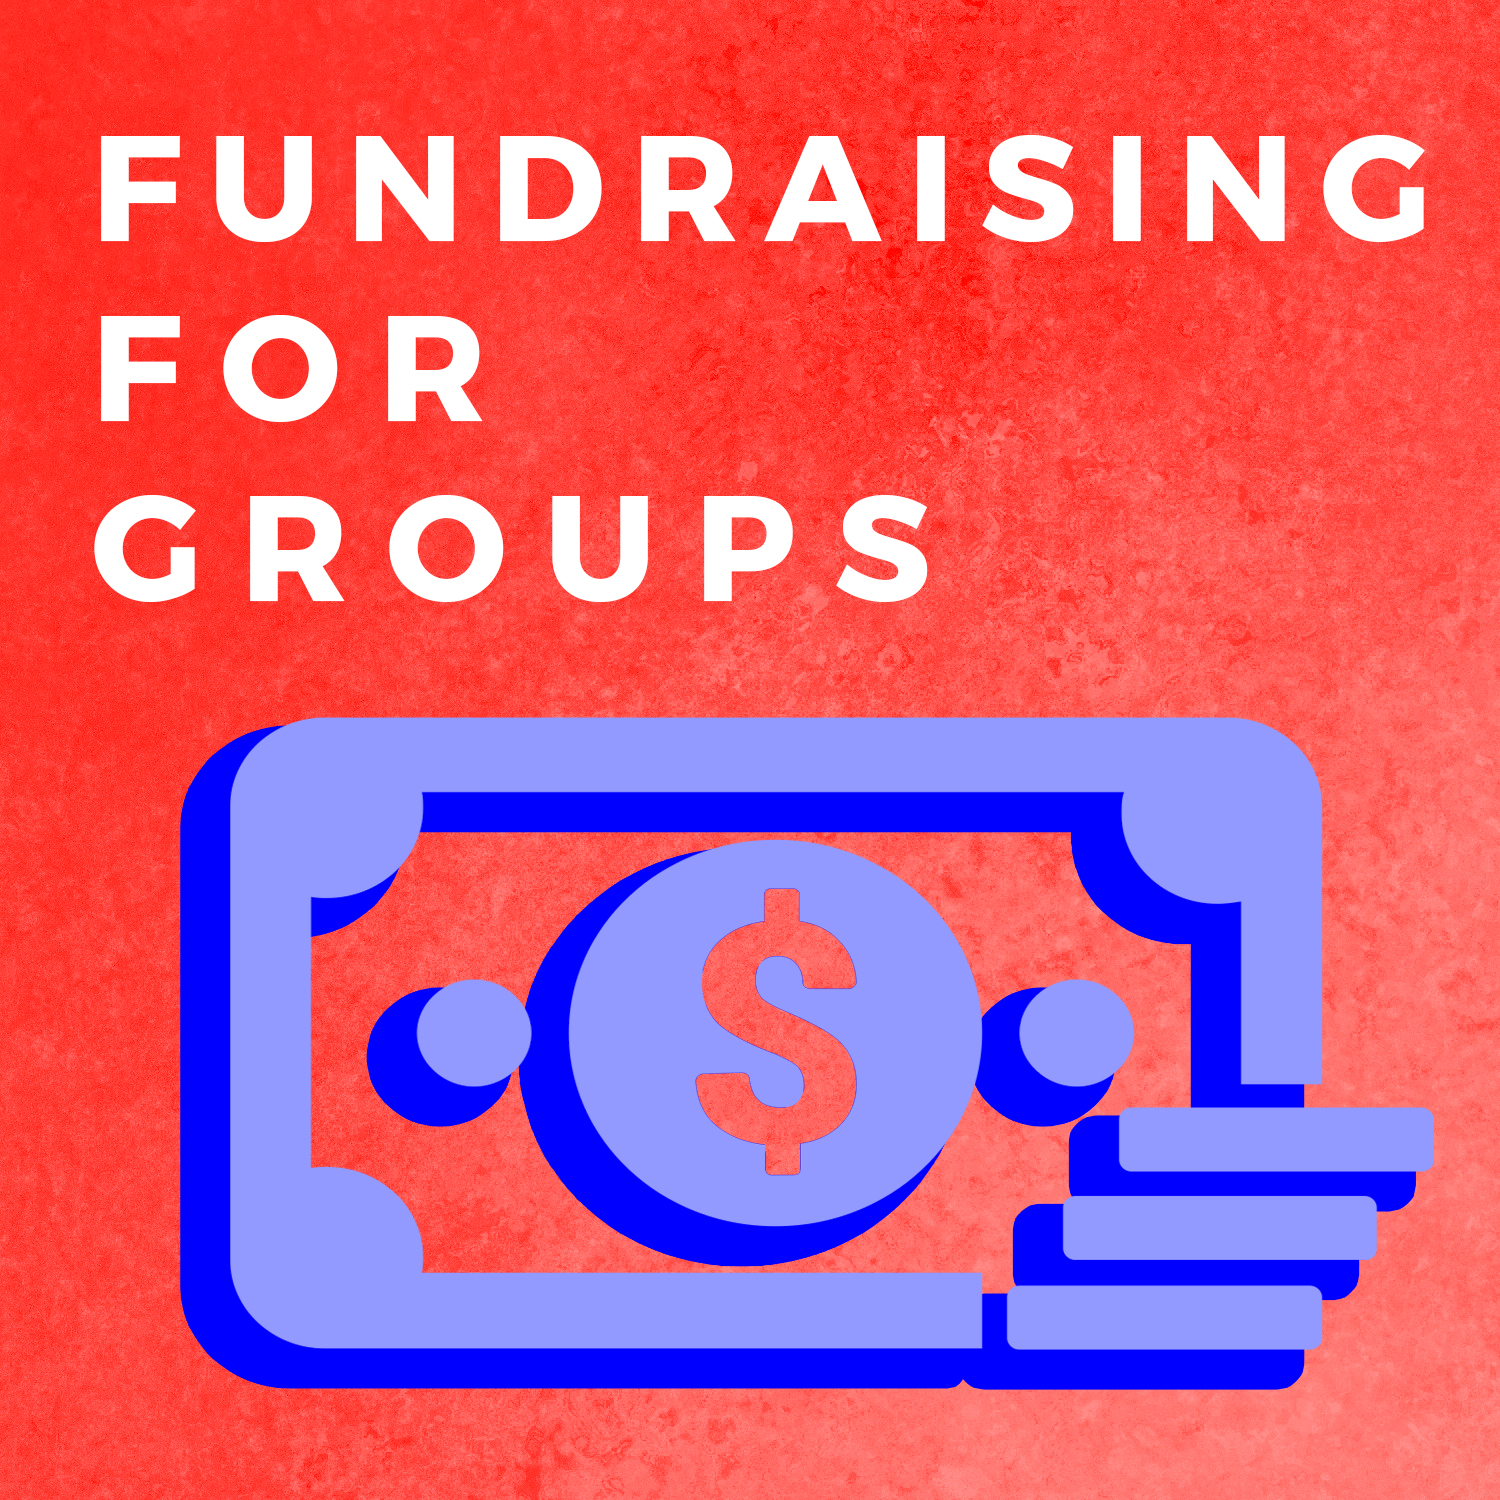 Fundraising For Groups